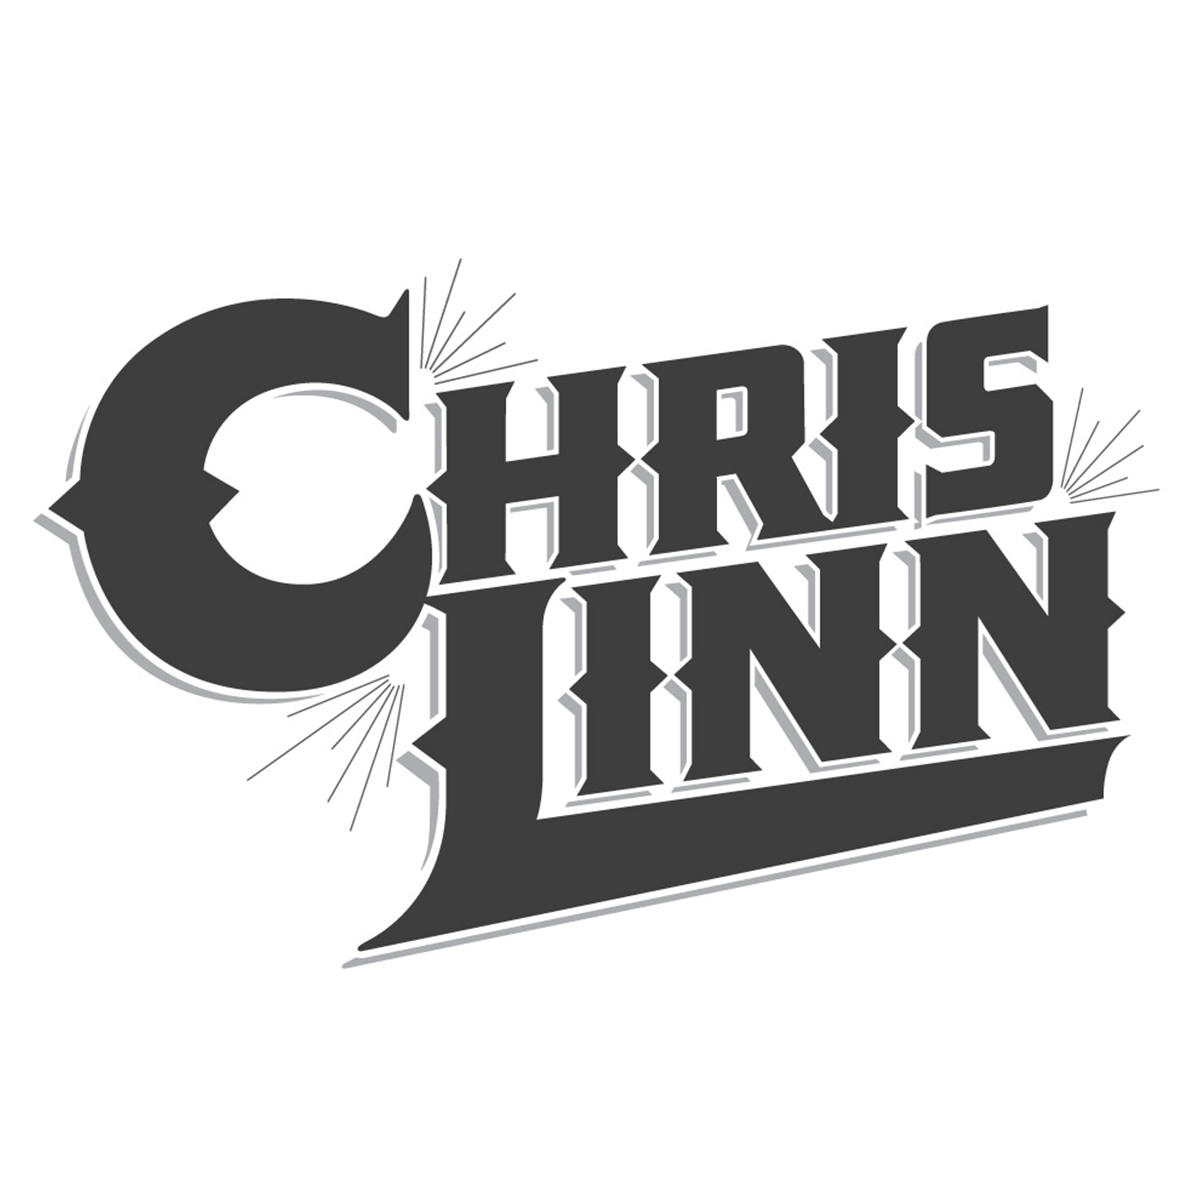 Chris Linn